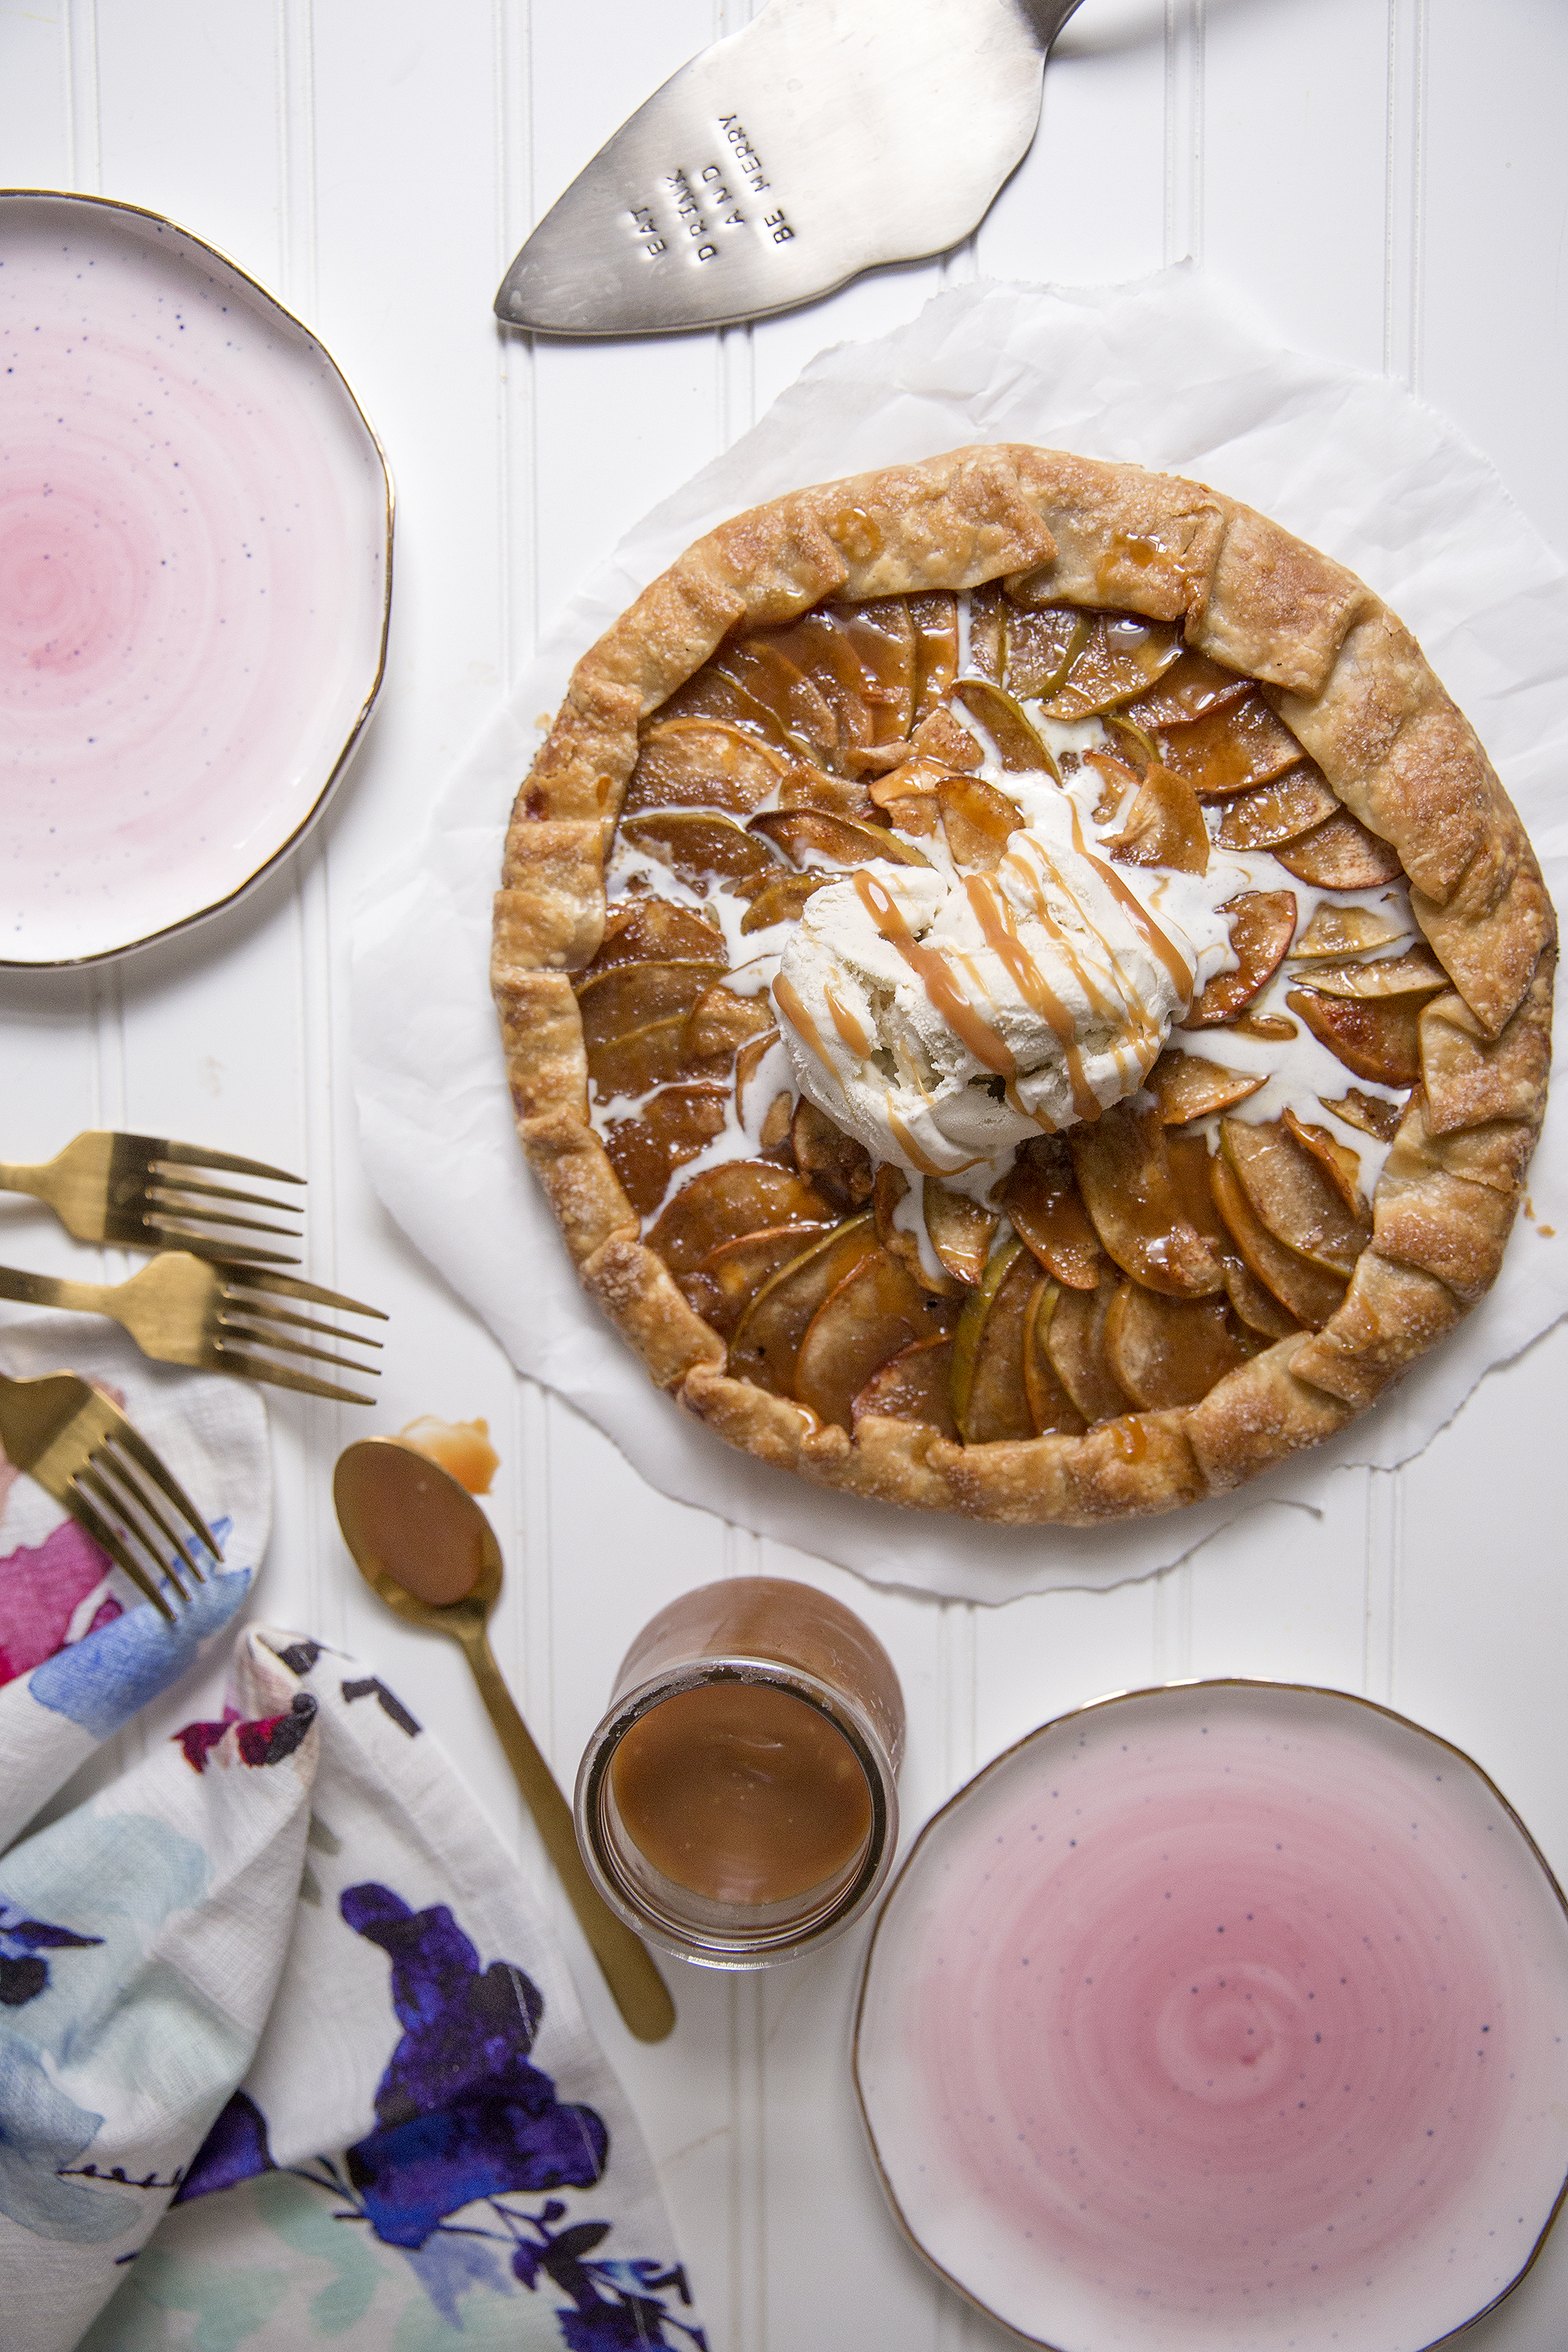 Simple holiday dessert. Get the recipe for this Caramel Apple Galette at Unusuallylovely.com